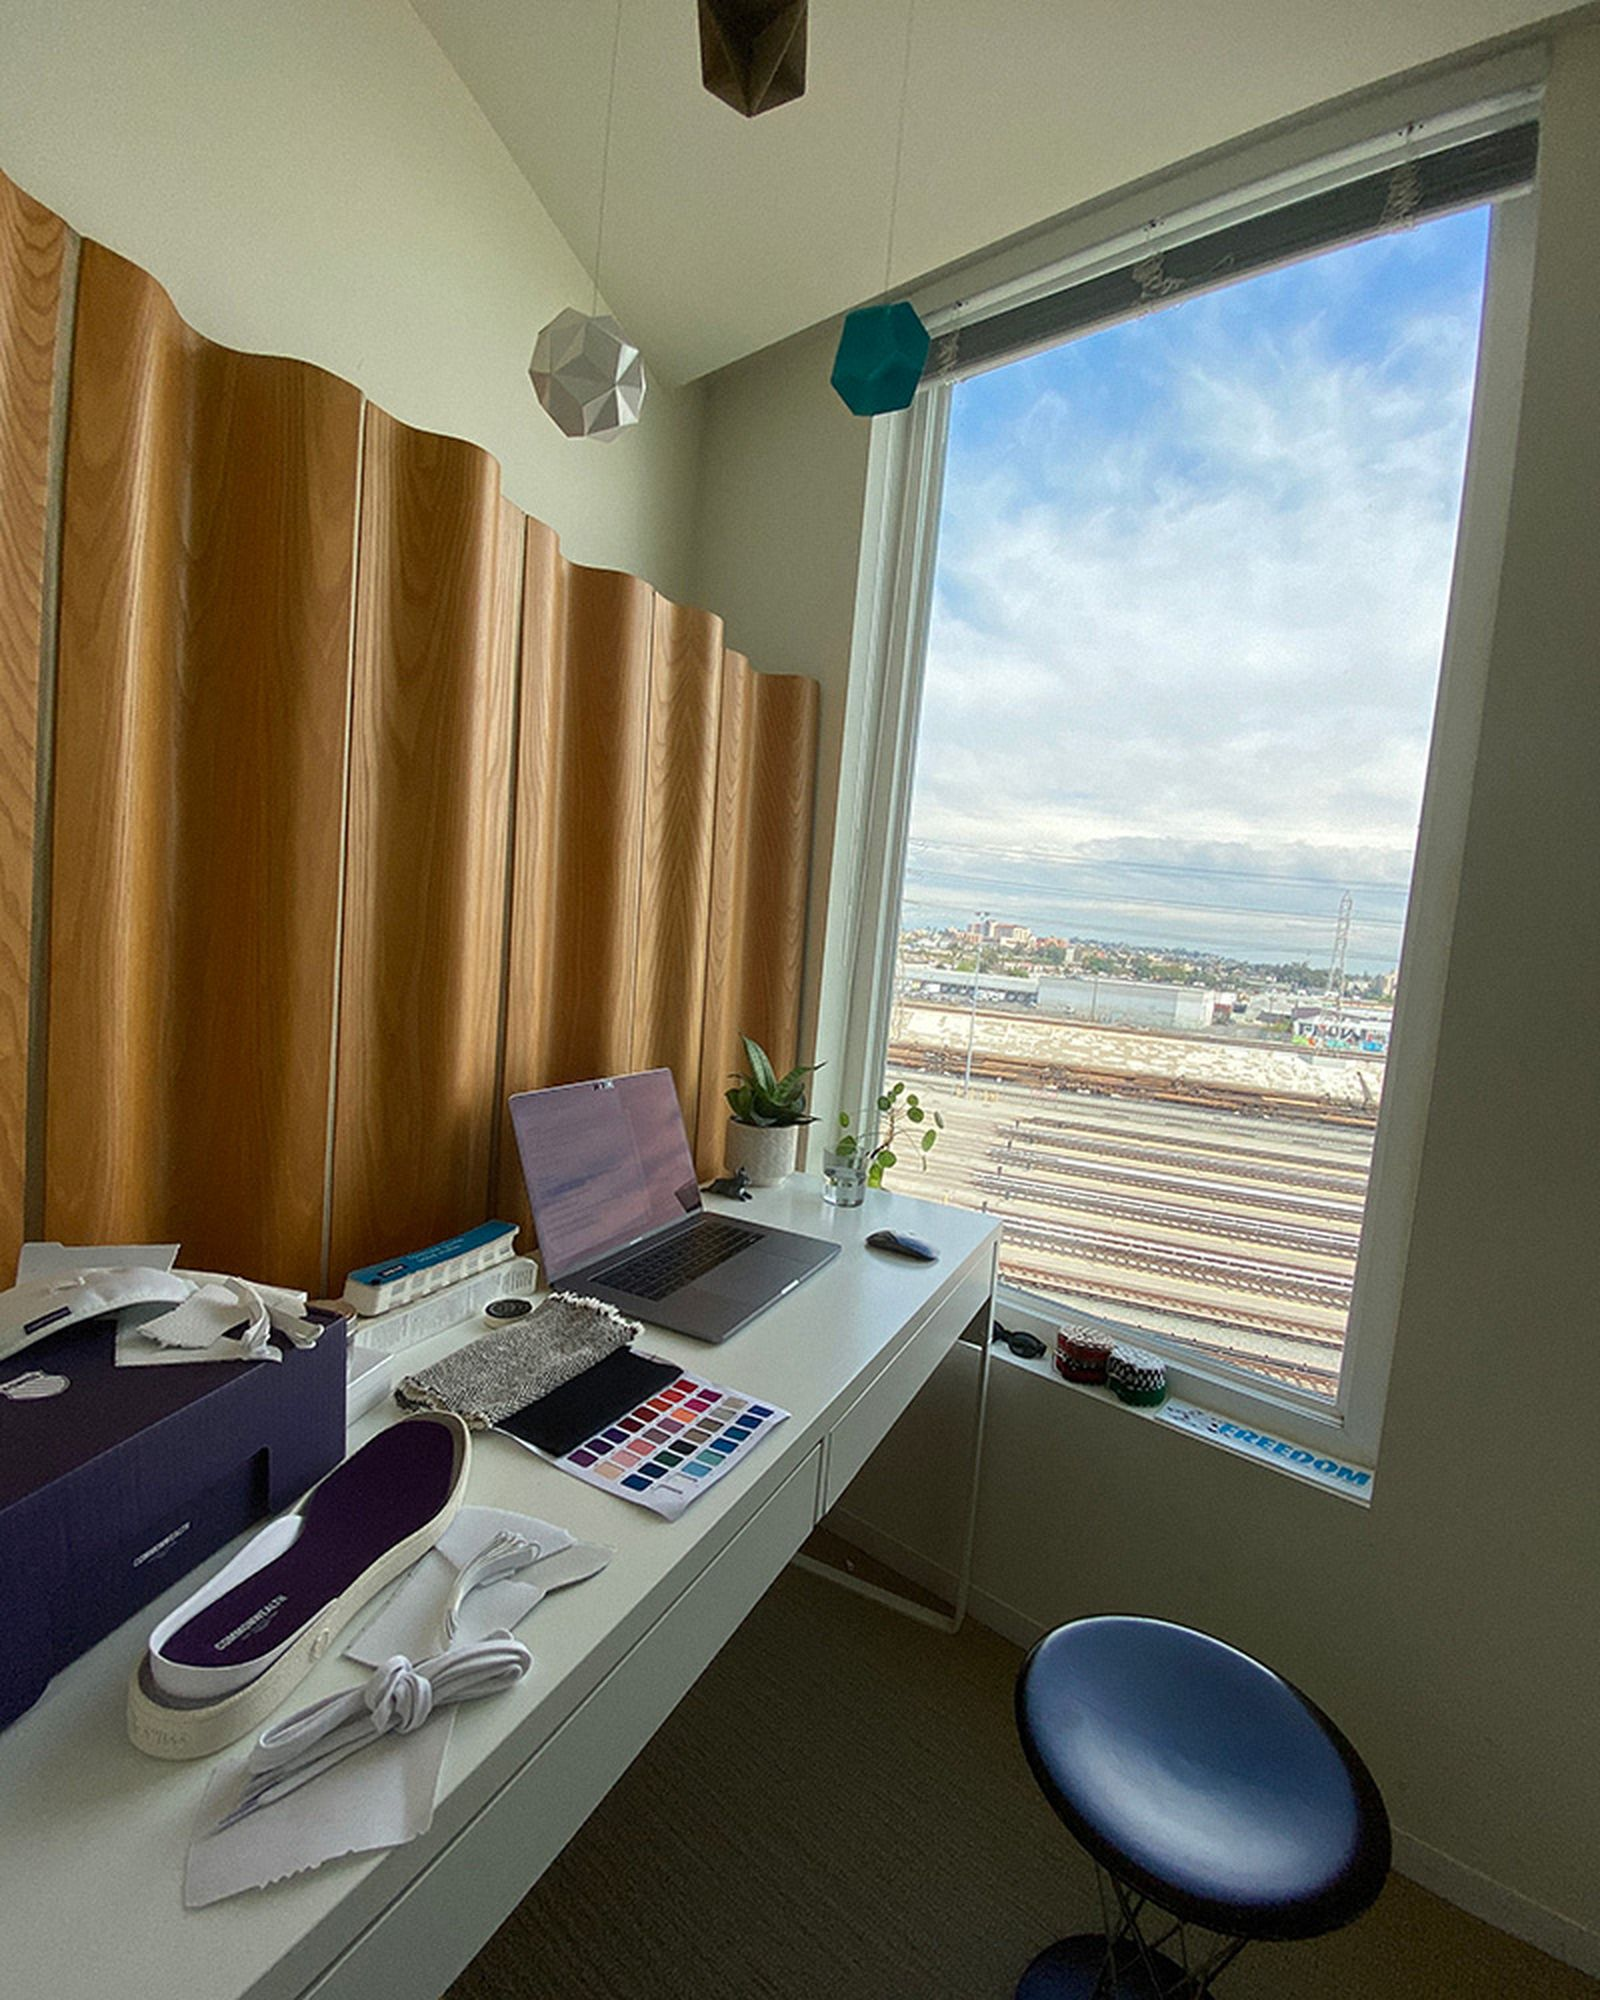 wfh-office-tour-look-inside-home-offices-omar-05